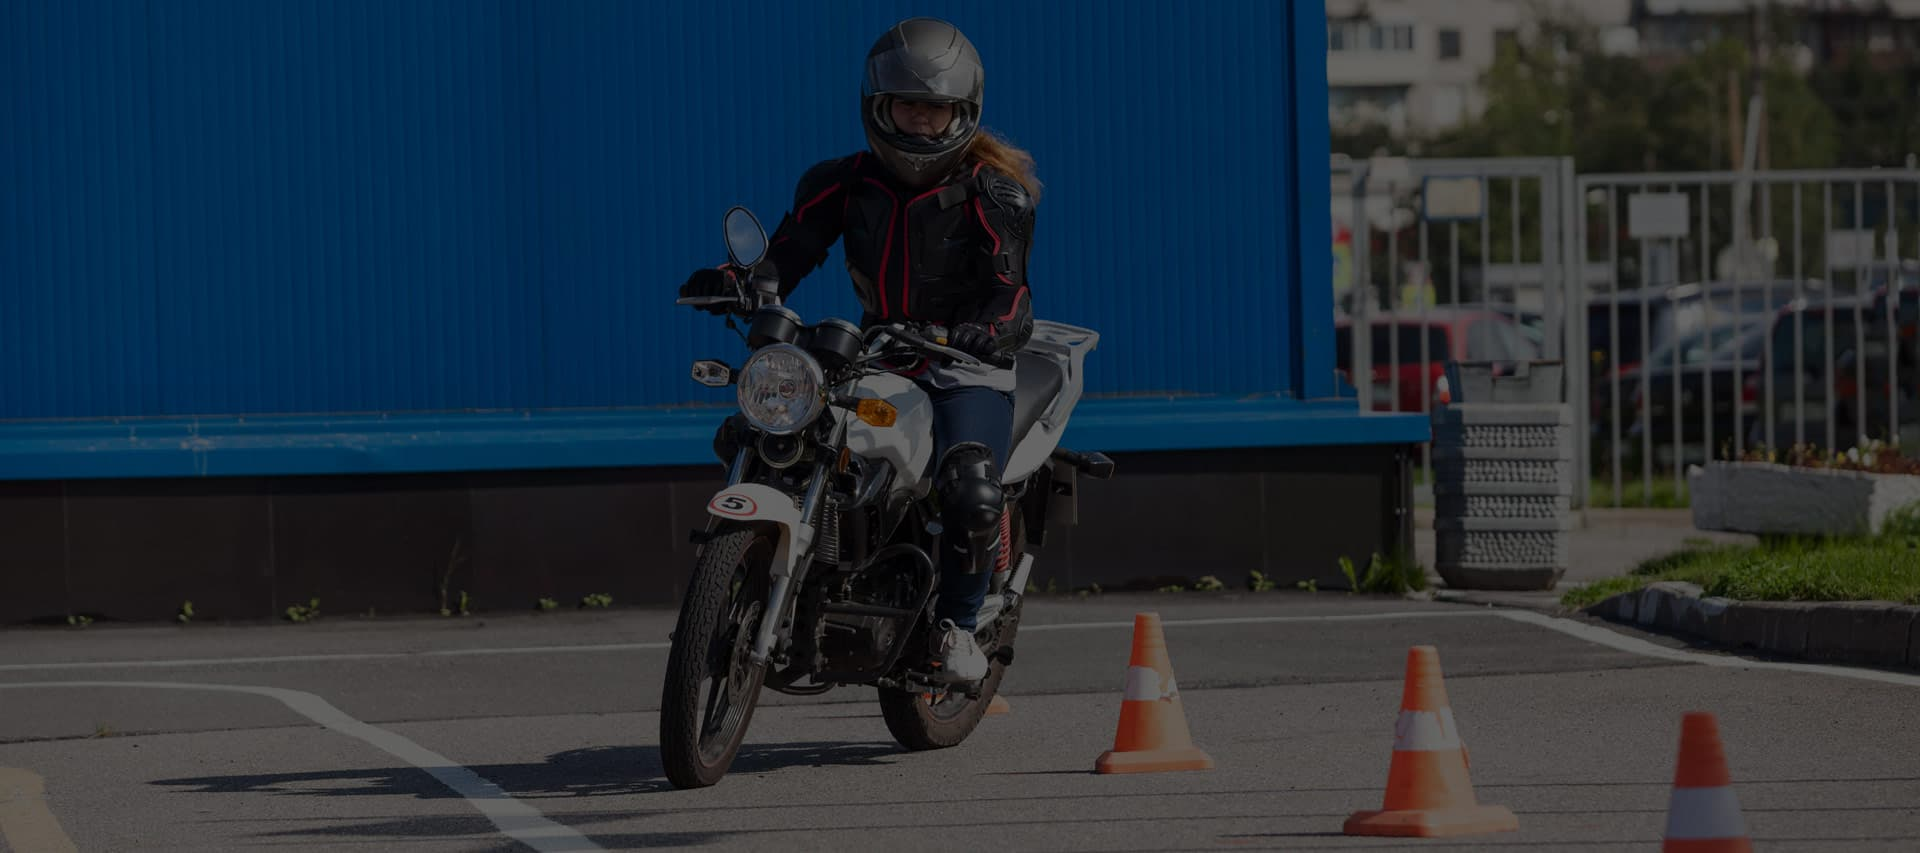 Motorcycle Skills test